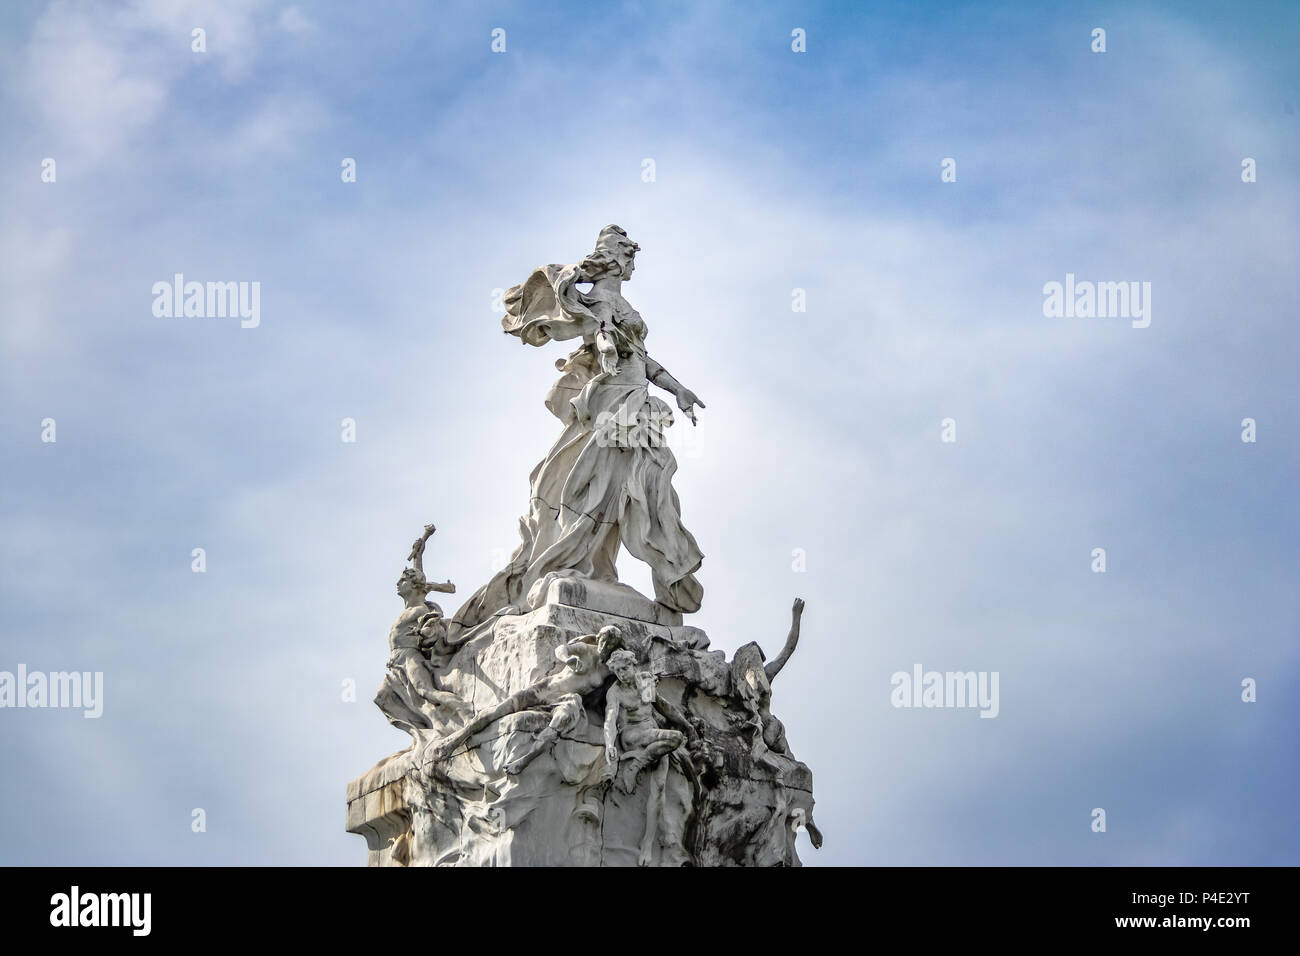 Monument to the Spaniards (Monumento de los Espanoles) in Palermo - Buenos Aires, Argentina - Stock Image